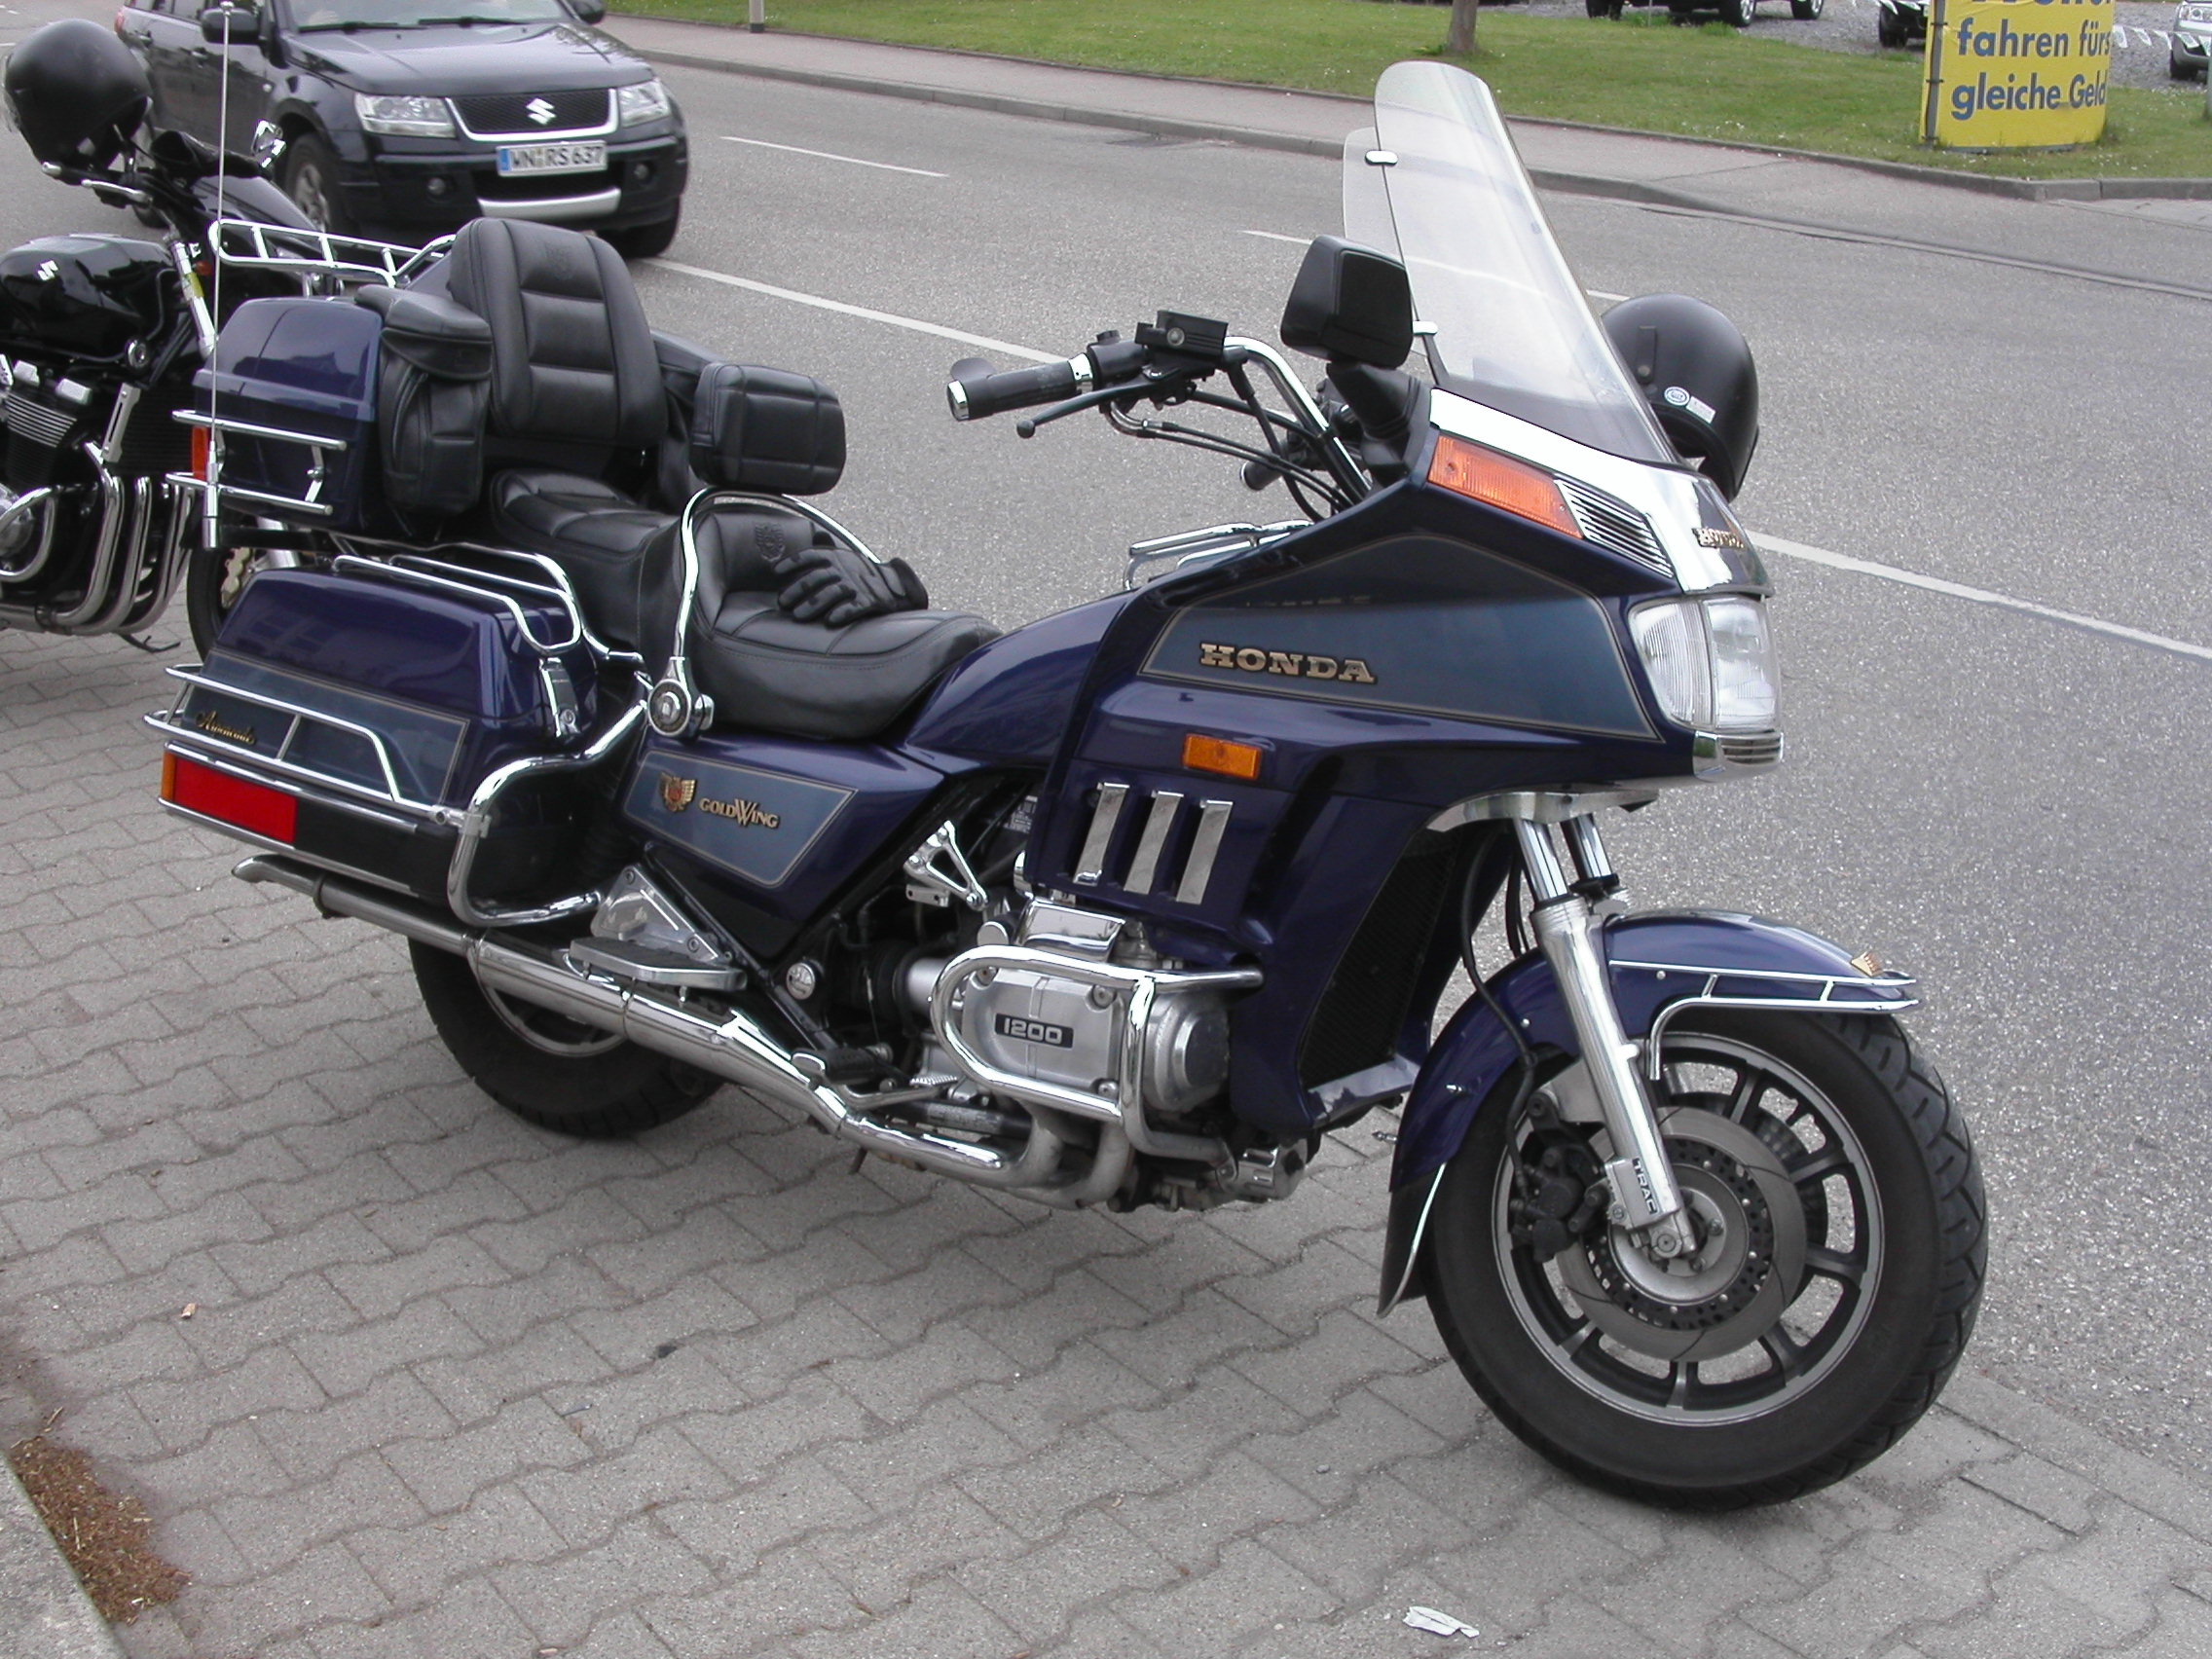 Kiser blog: goldwing 1200